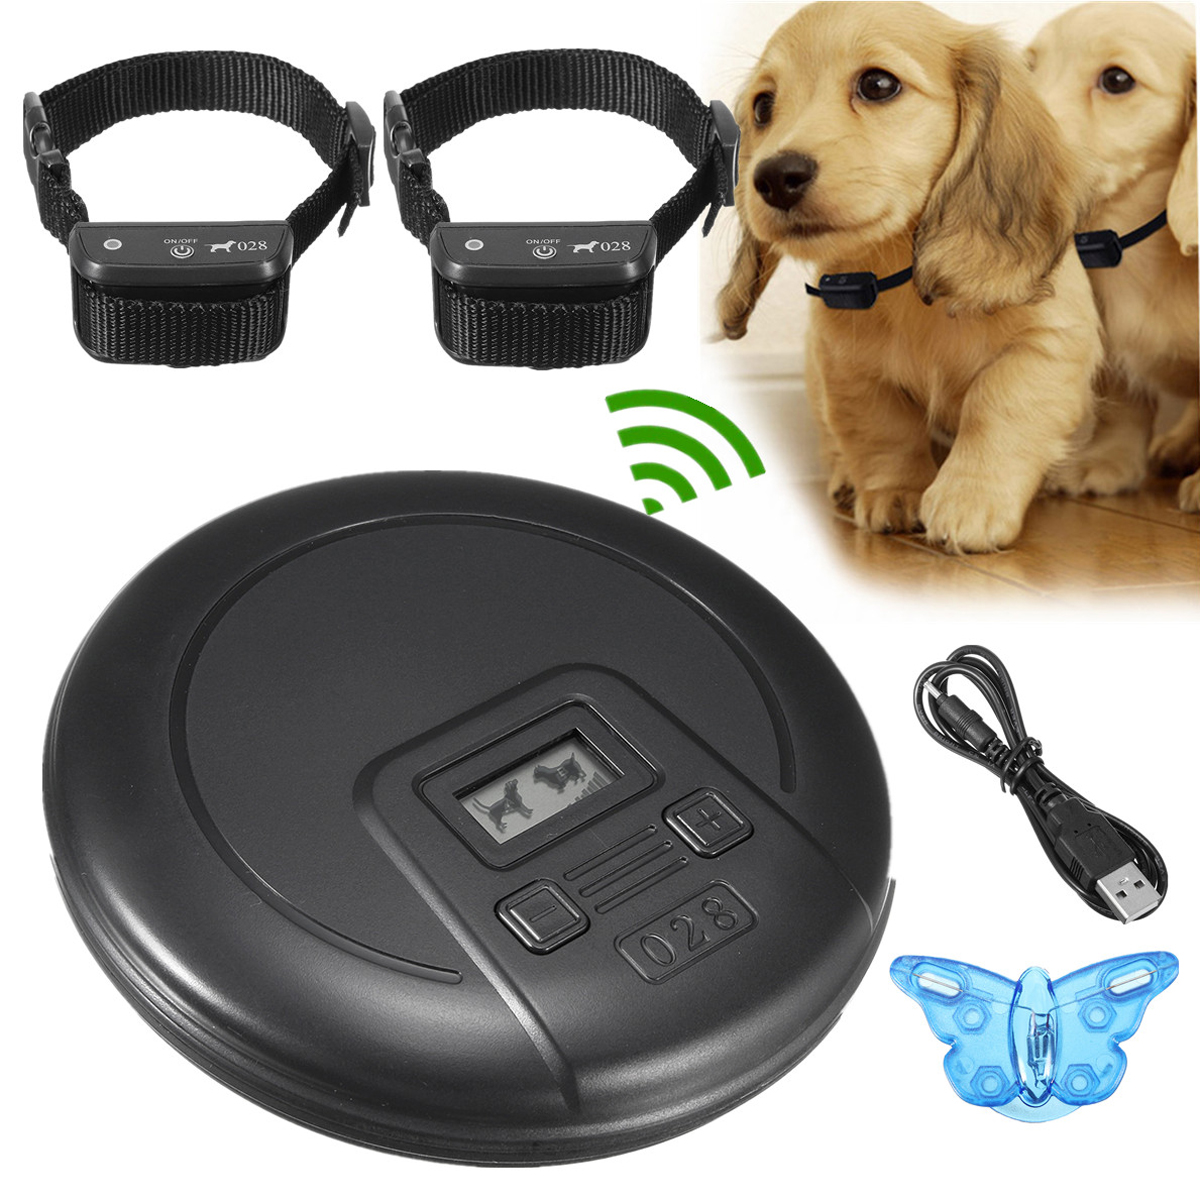 Harmless Digtal Wireless Indoor Pet Barrier Electronic Do...